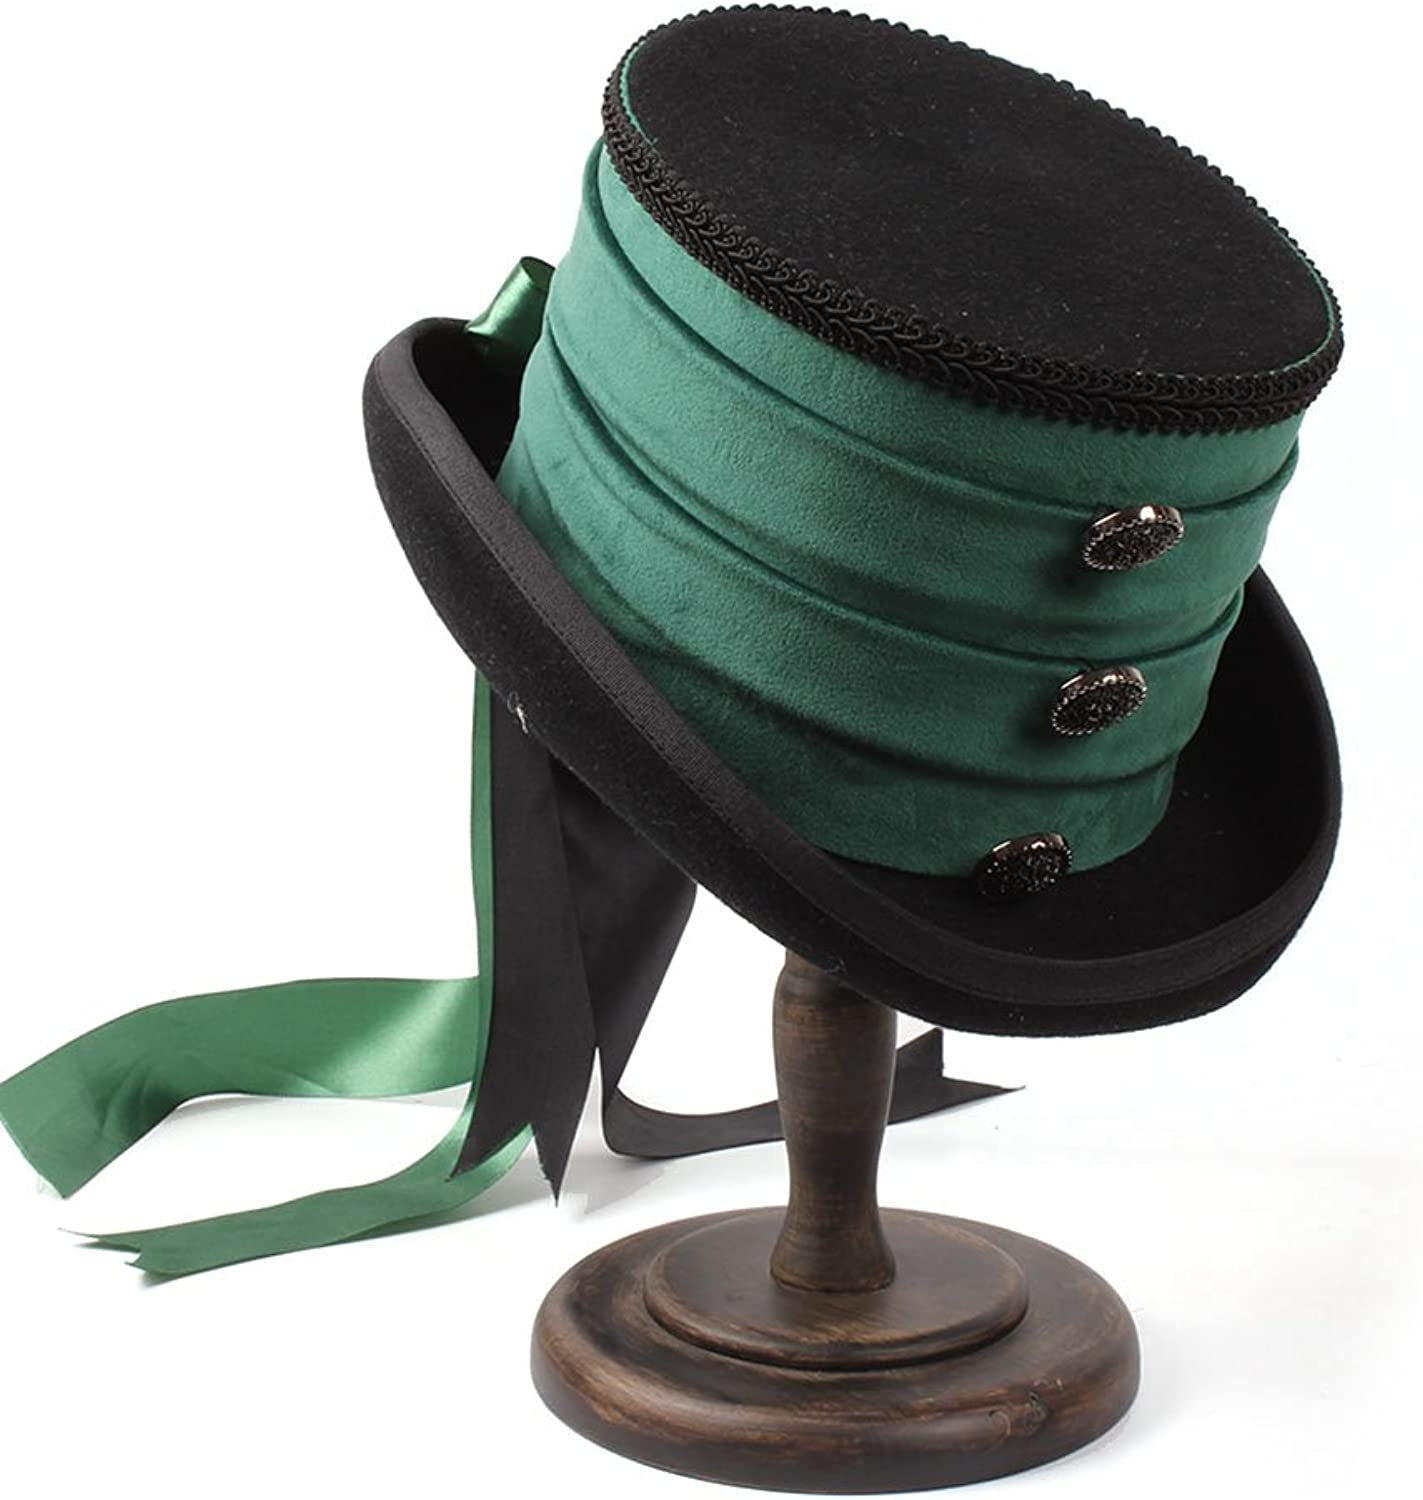 a3b41af6f21f90 Chapeau ZI LING Victorian Raven Green Top Hat Wedding Hat Ribbon Creative  Personality Hat Steampunk SHOP- npfidt2814-Sporting goods